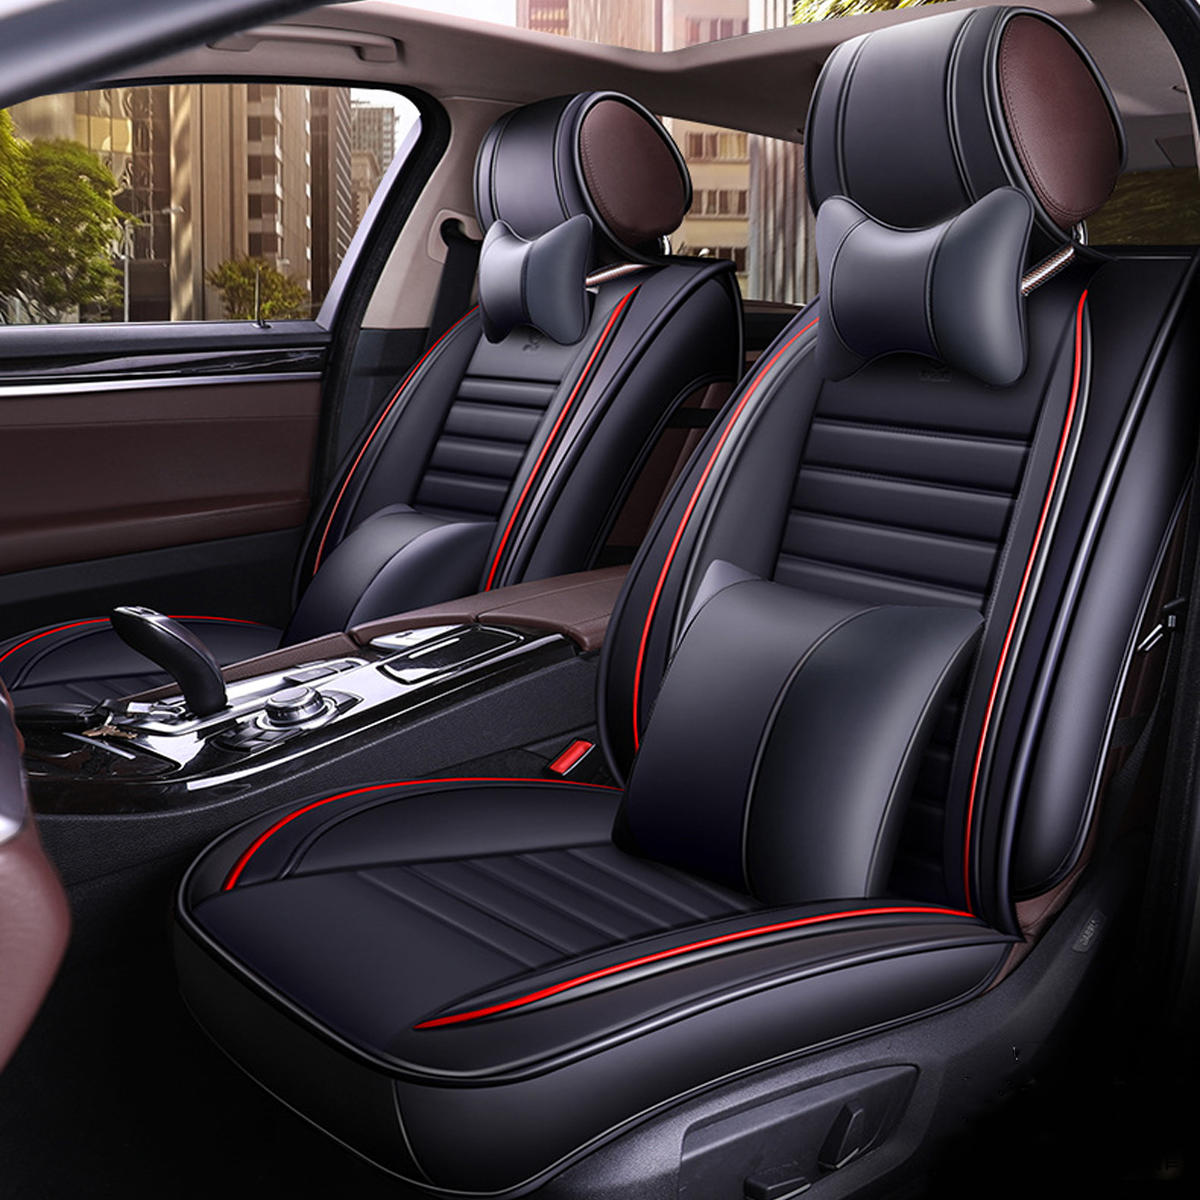 13Pcs PU Leather Car Full Surround Seat Cover Cushion Protector Set Universal For 5 Seats